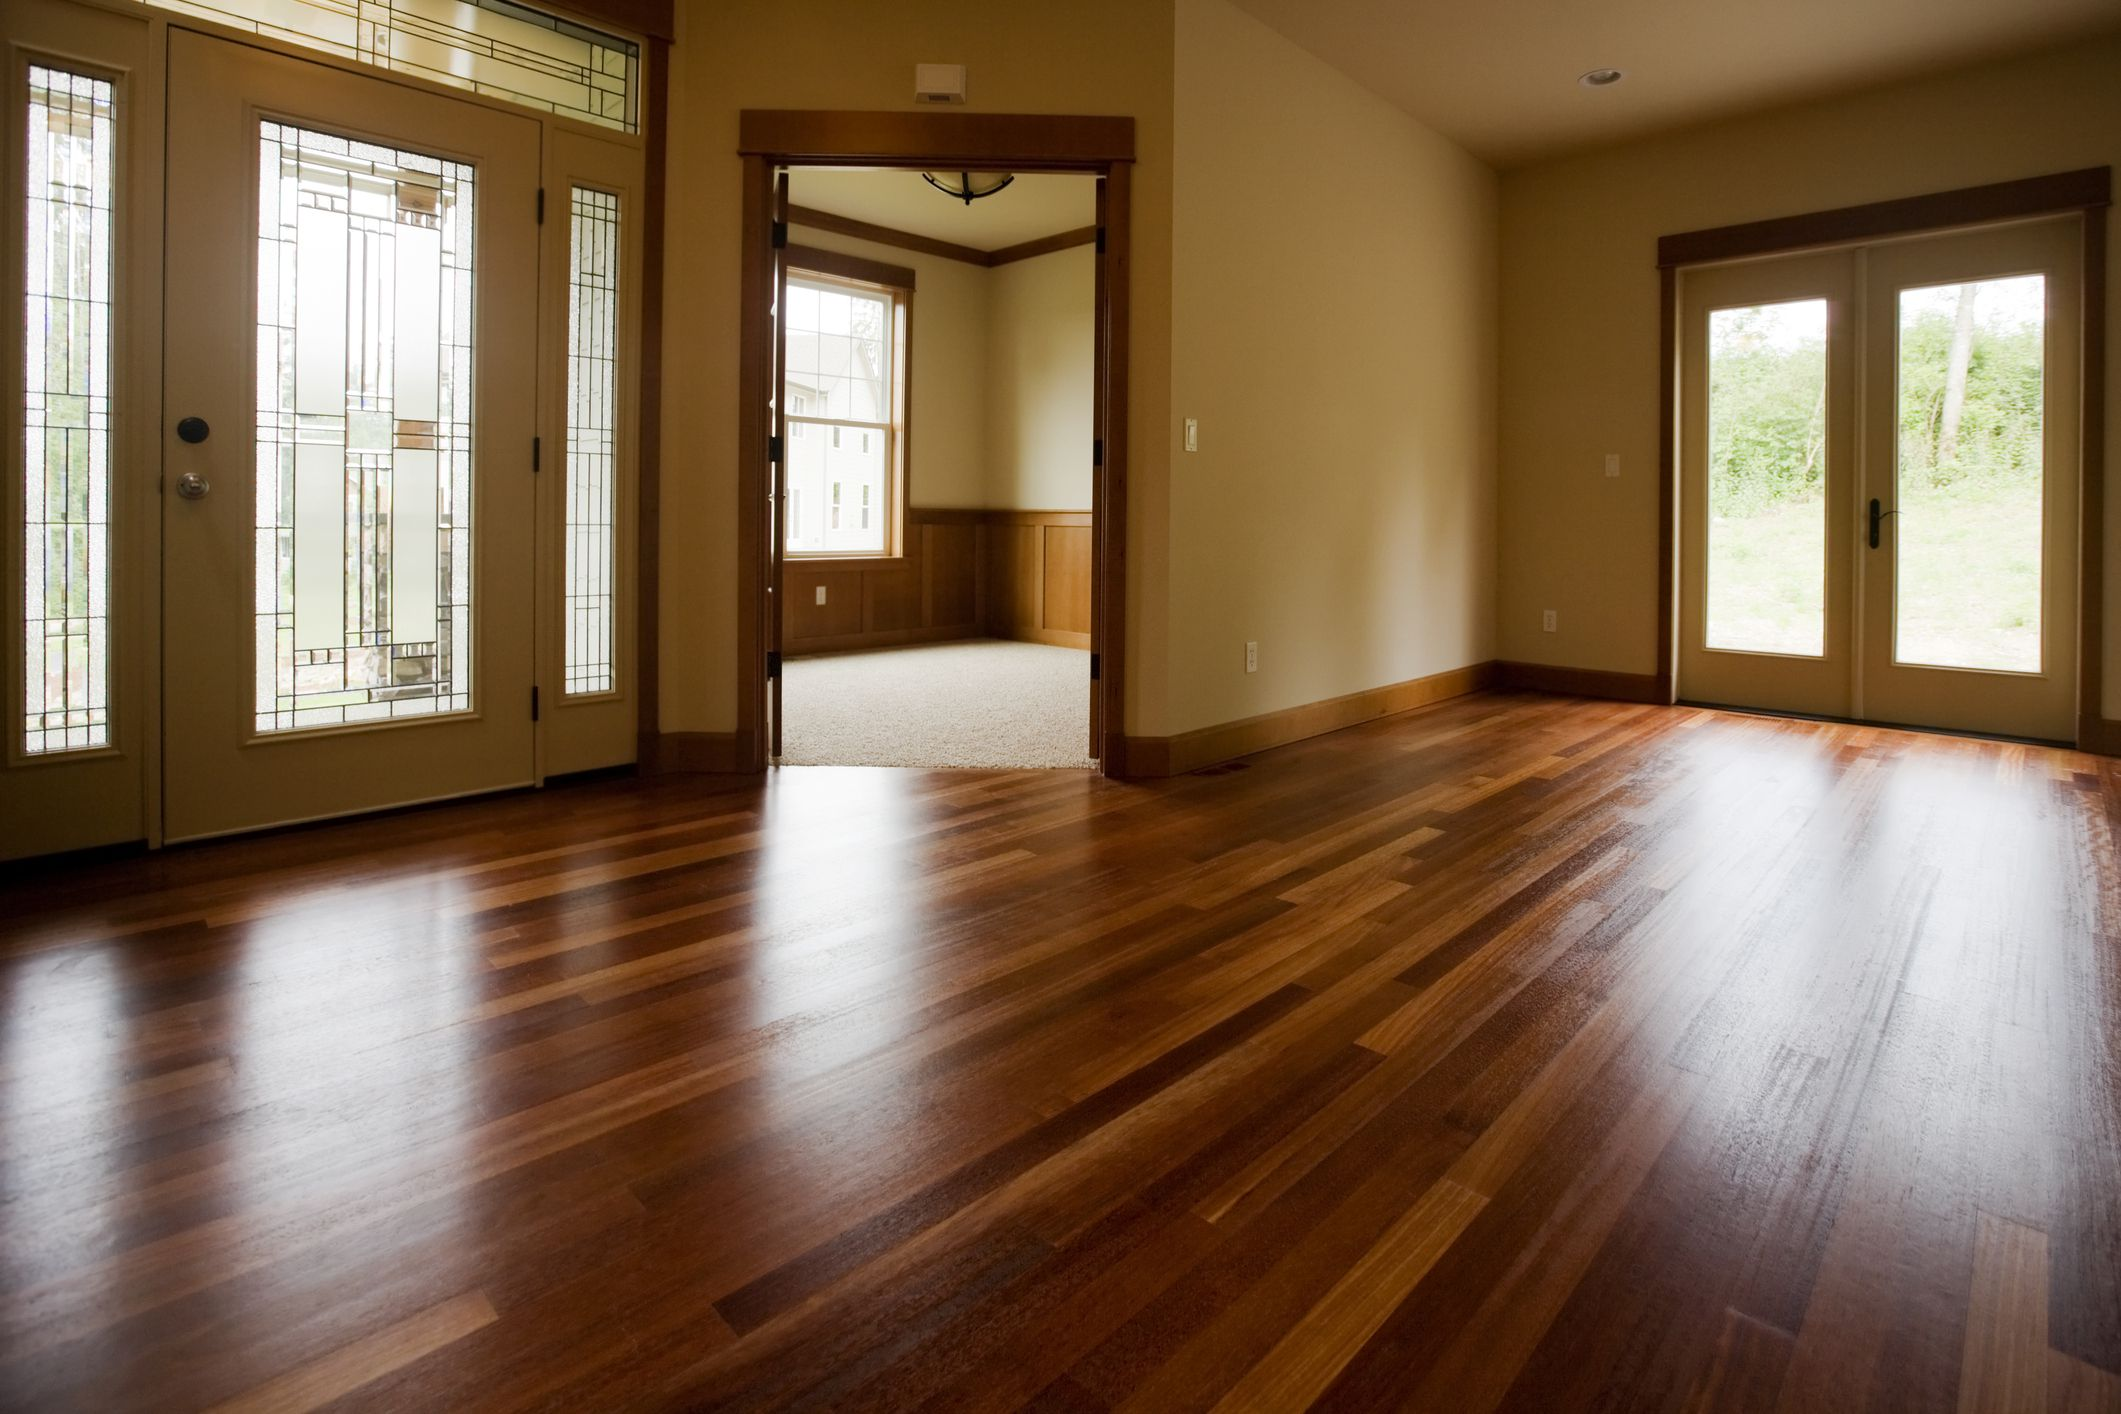 Attractive Types Of Hardwood Flooring (buyers guide) PC74